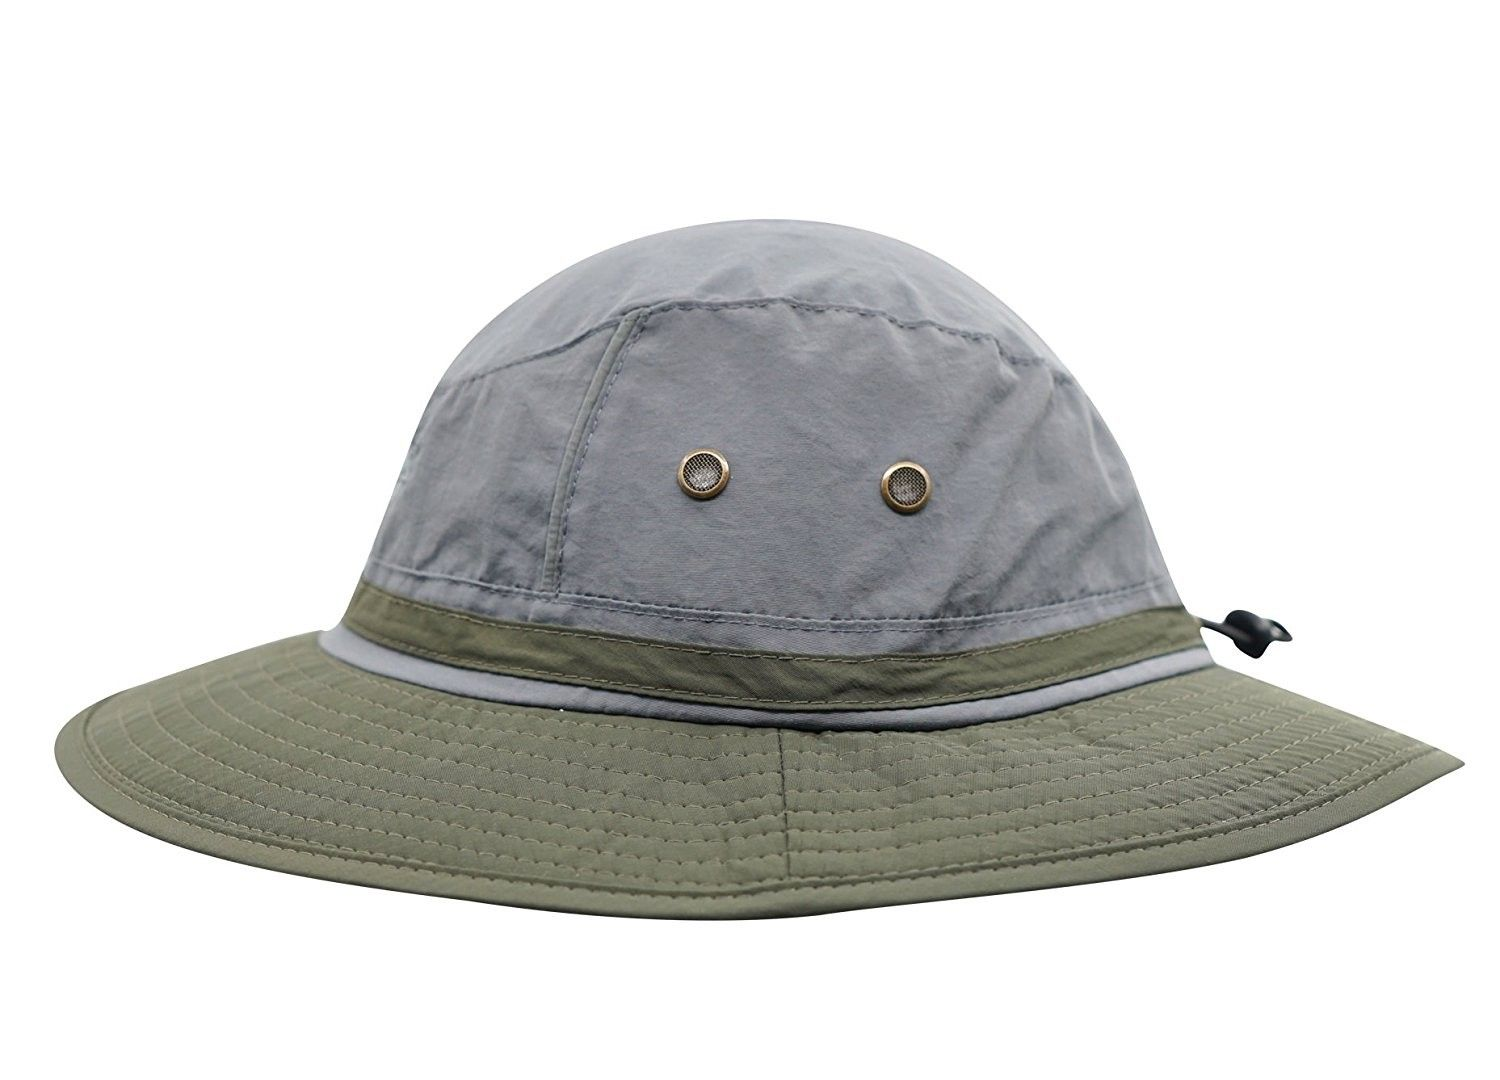 Outdoor boonie Fishing Bucket Hat Summer Colorblock Sun Hats Hunting ... 9e532edc13f4